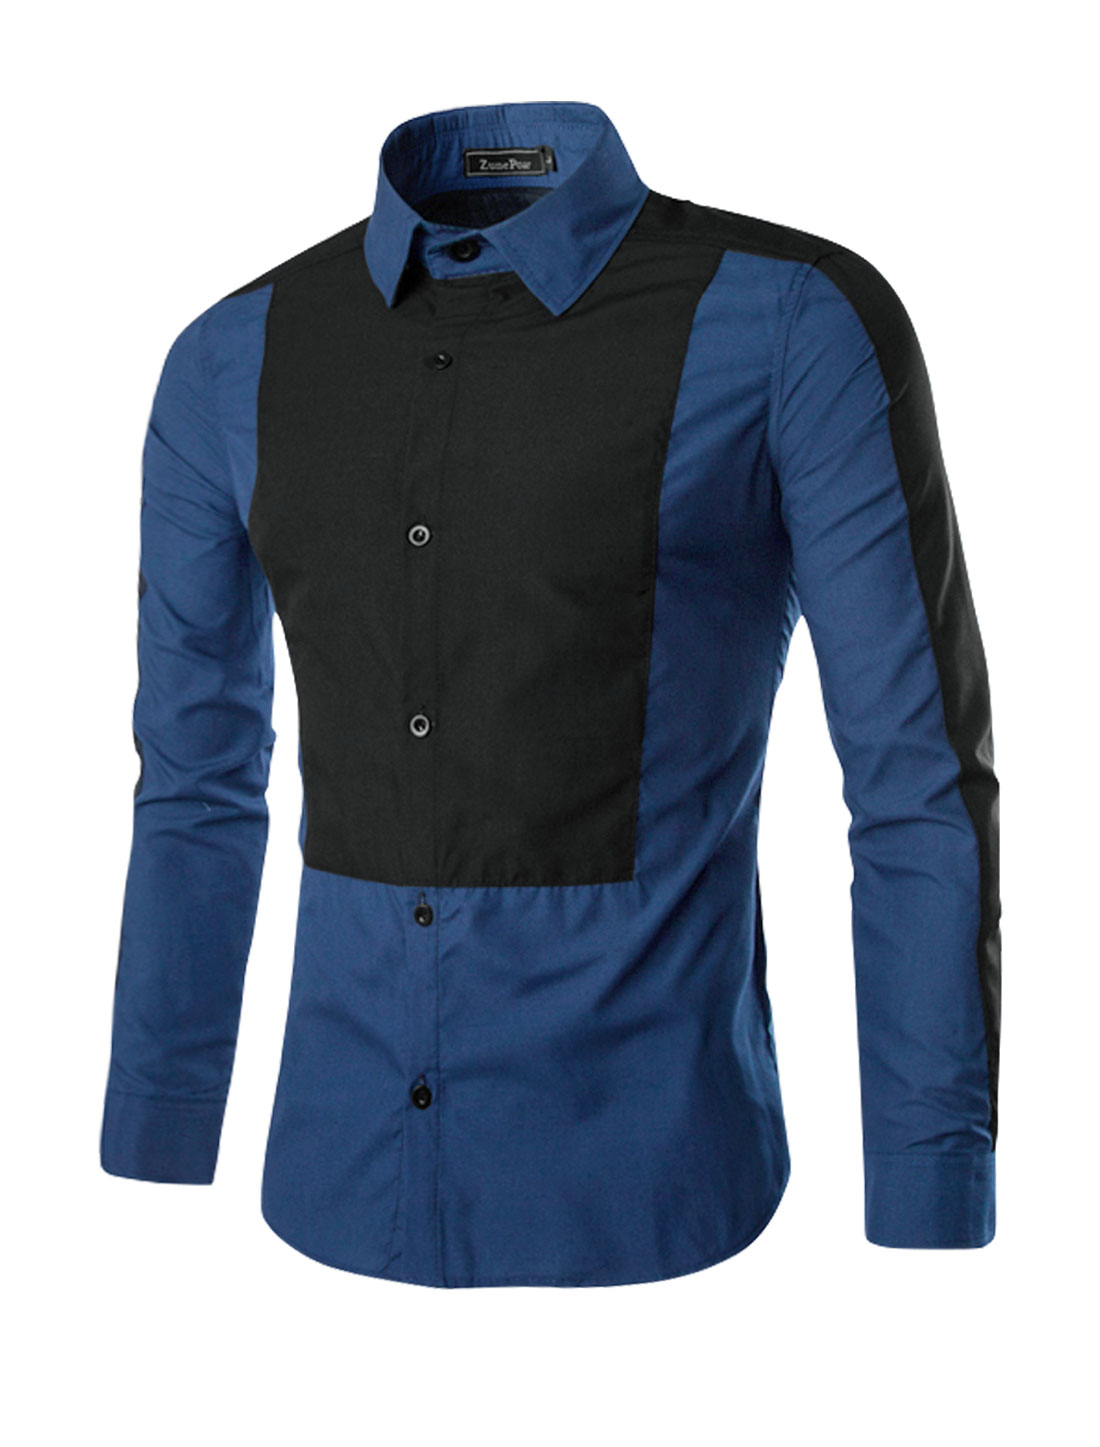 Men Long Sleeves Contrast Color Button Up Casual Shirt Navy Blue M